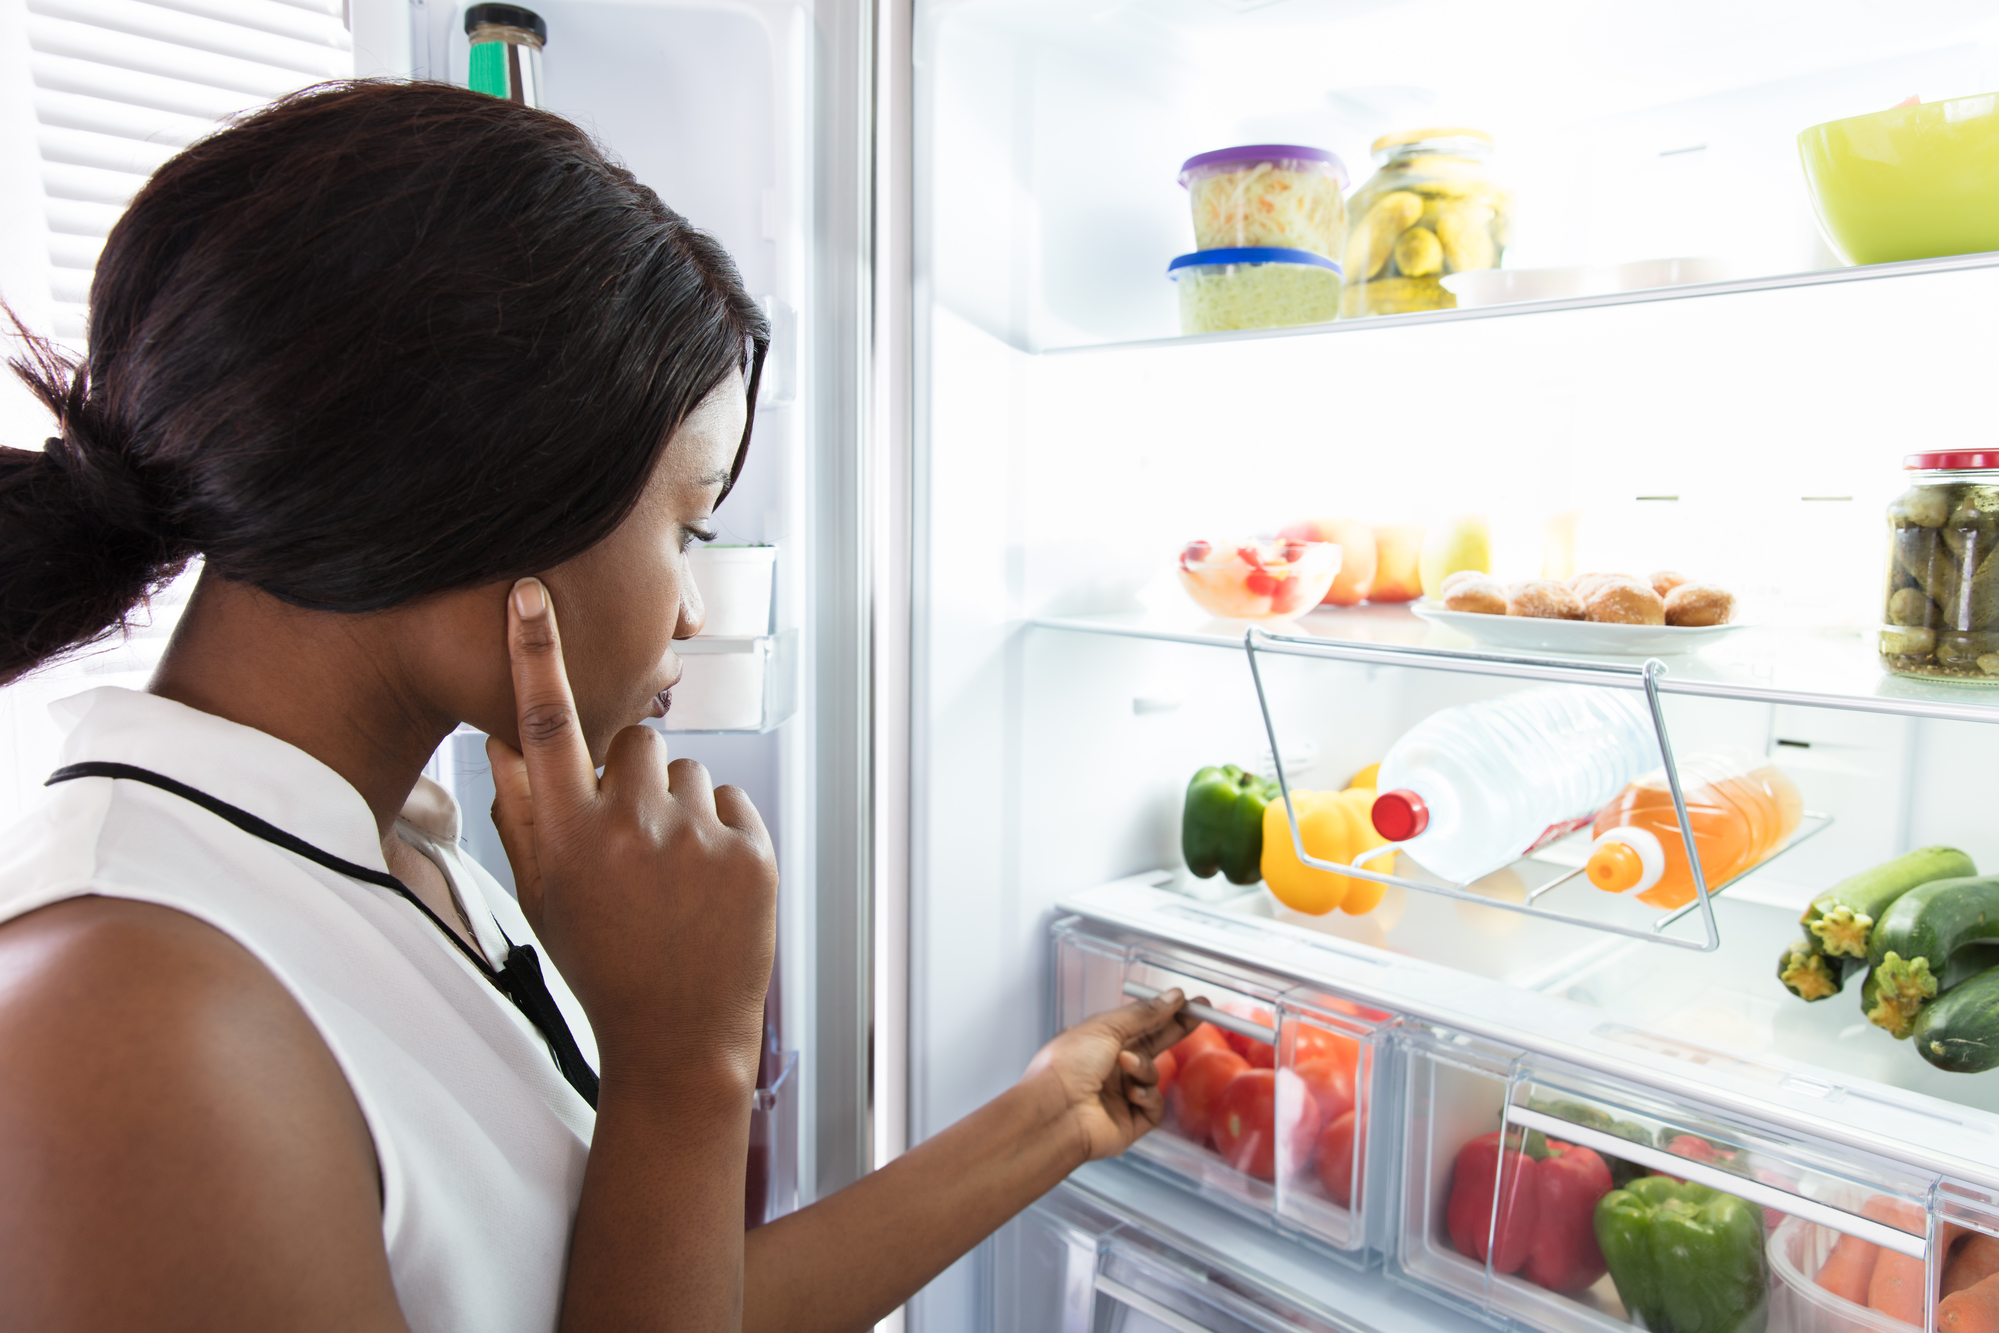 A Black femme-presenting person looking inside the fridge at a variety of vegetables